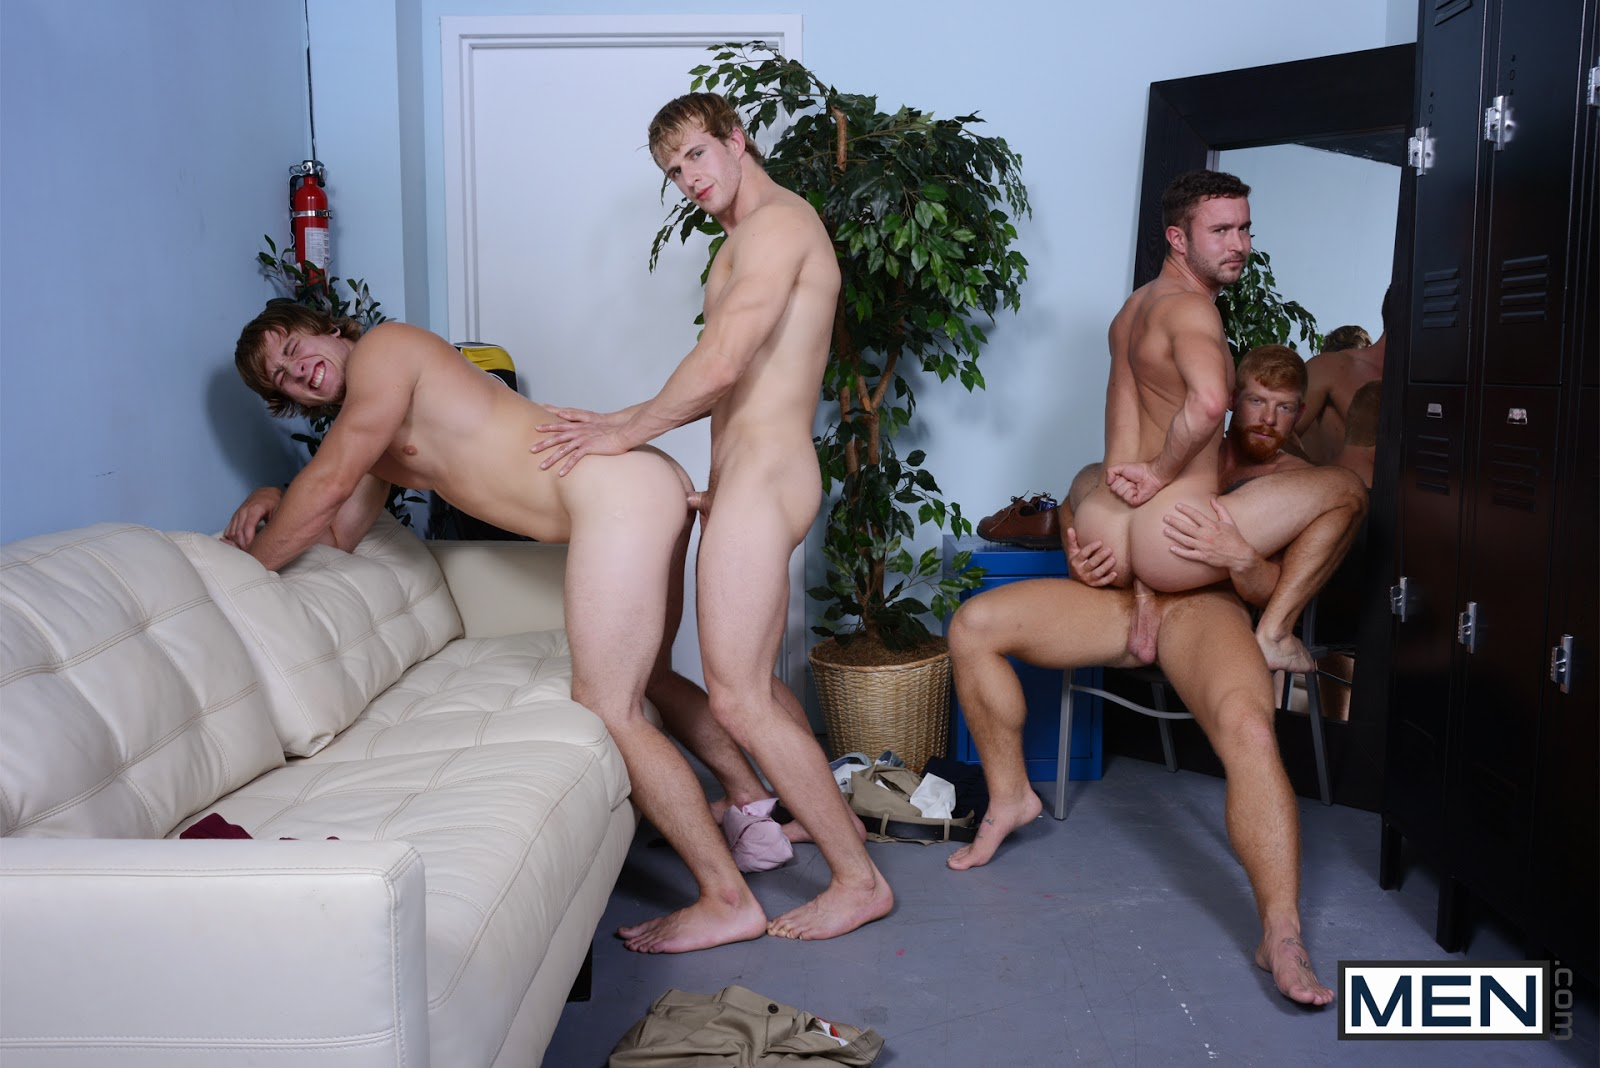 Senior men fuck each other gay 21 yearold 5